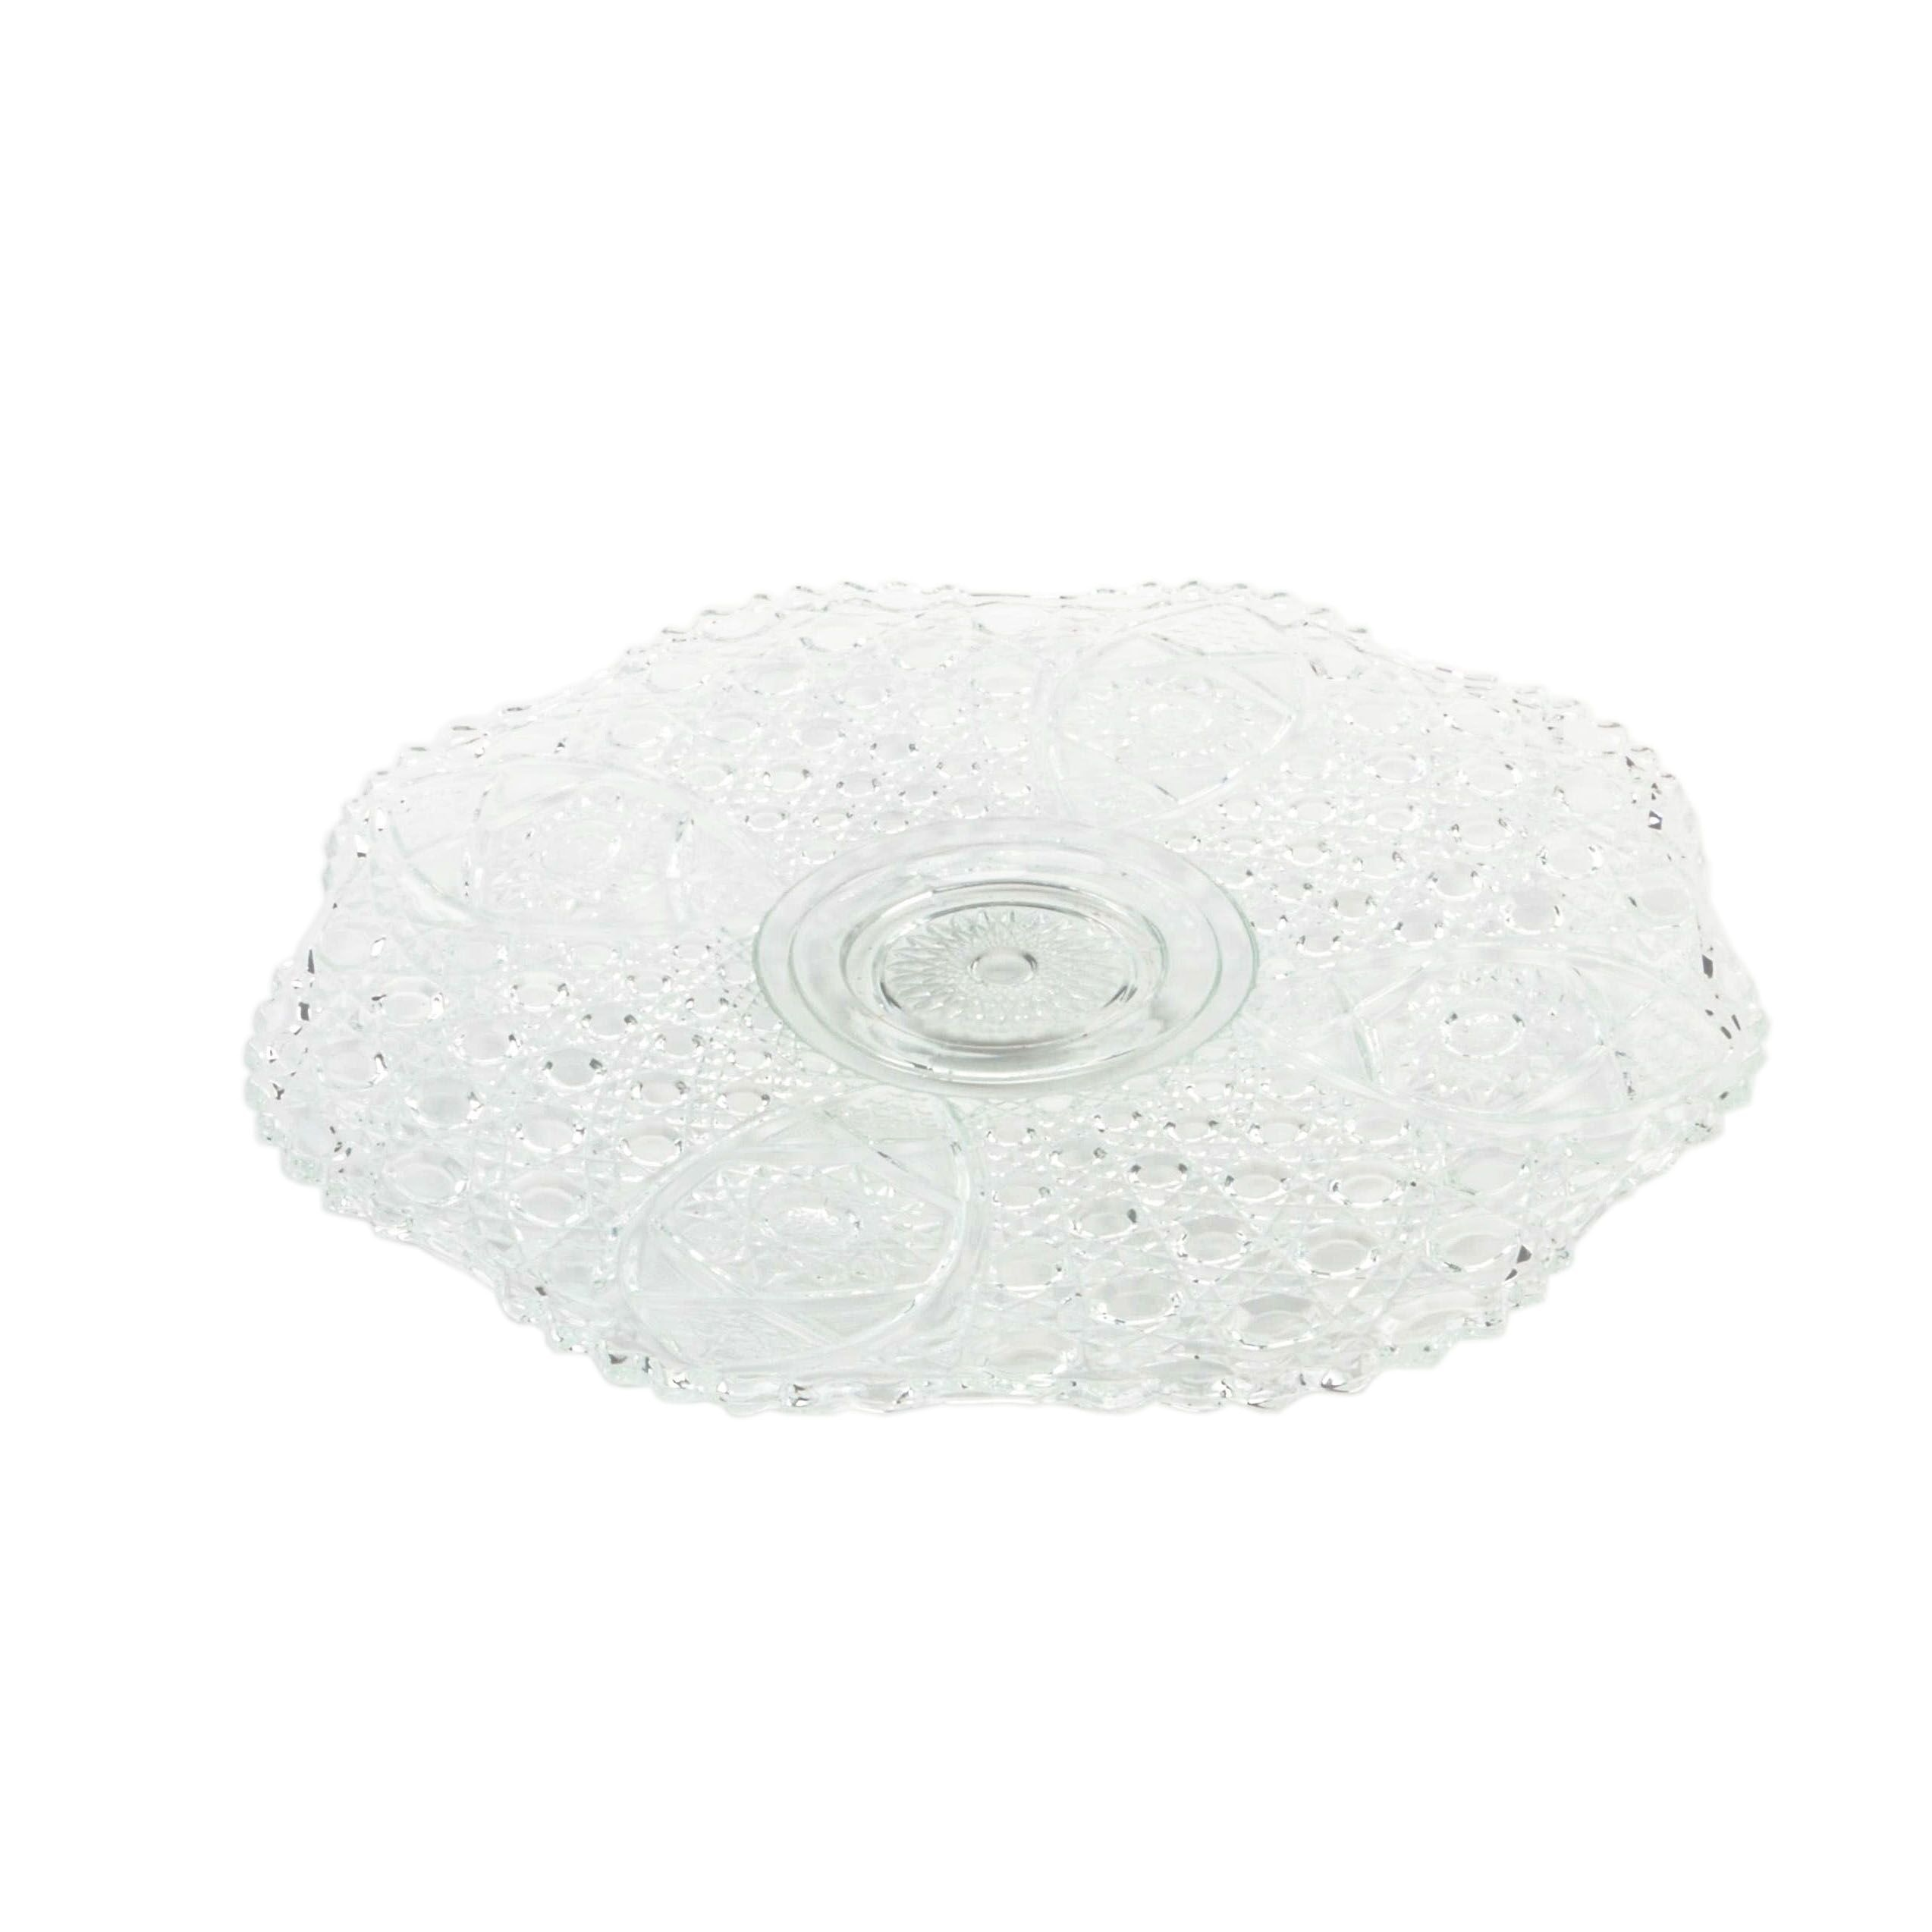 Vintage Pressed Glass Serving Tray